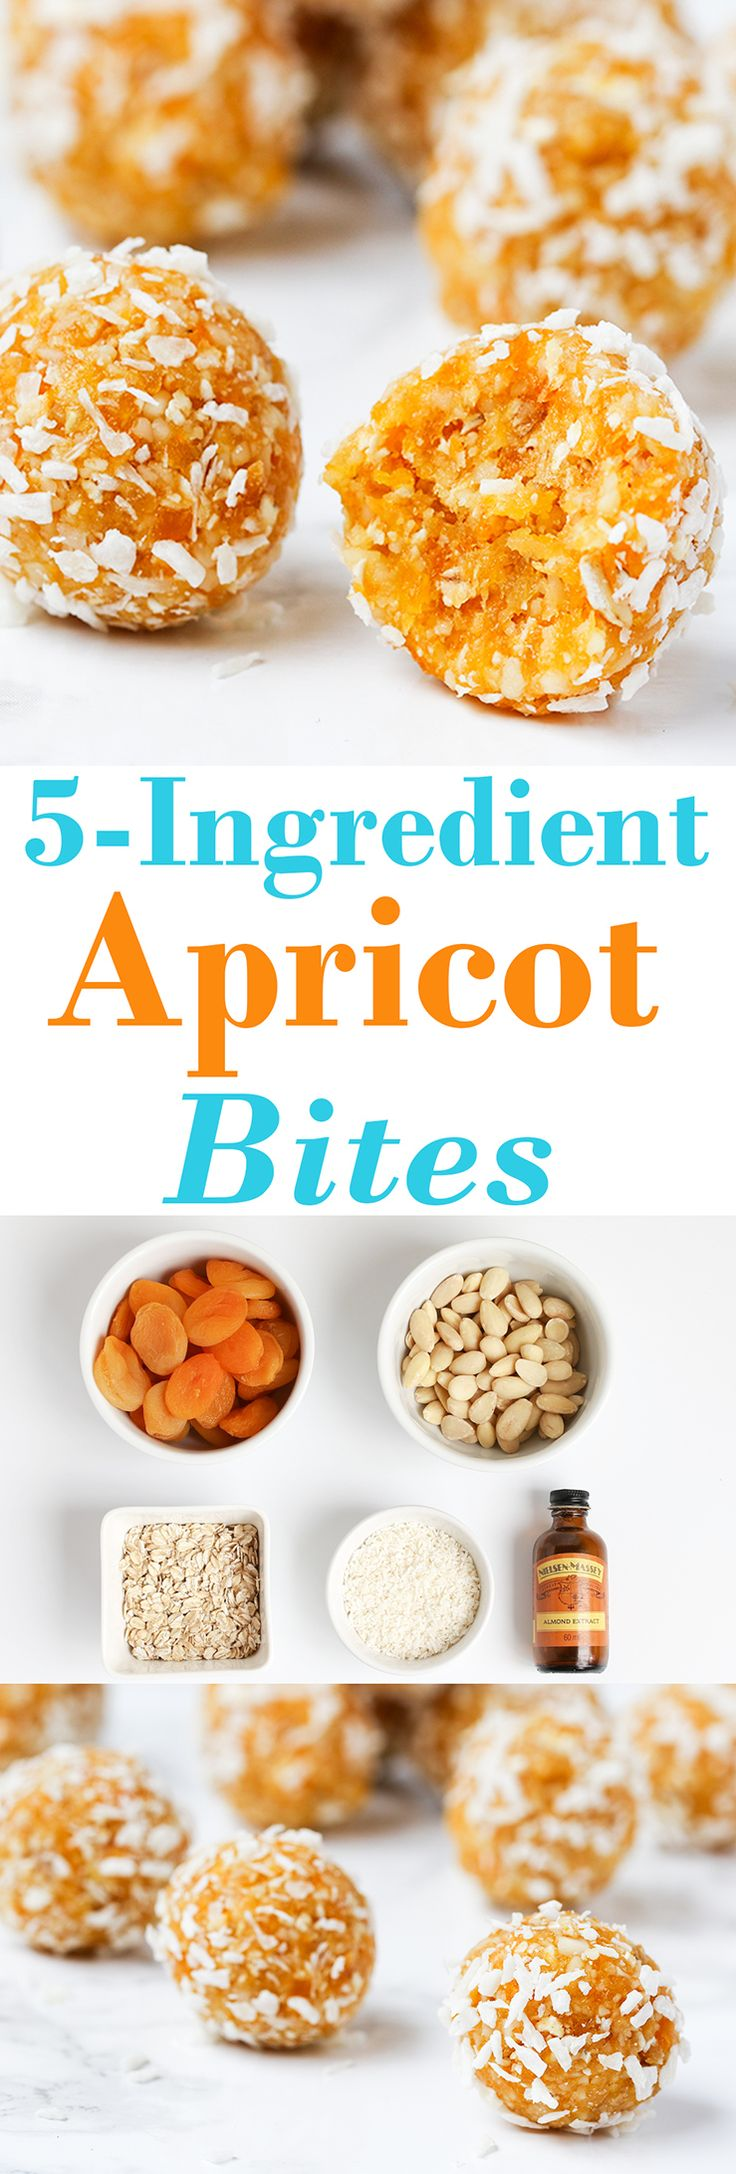 15 minutes and 5 ingredients is all you need for these nutritious bites! @ReTweetNGro